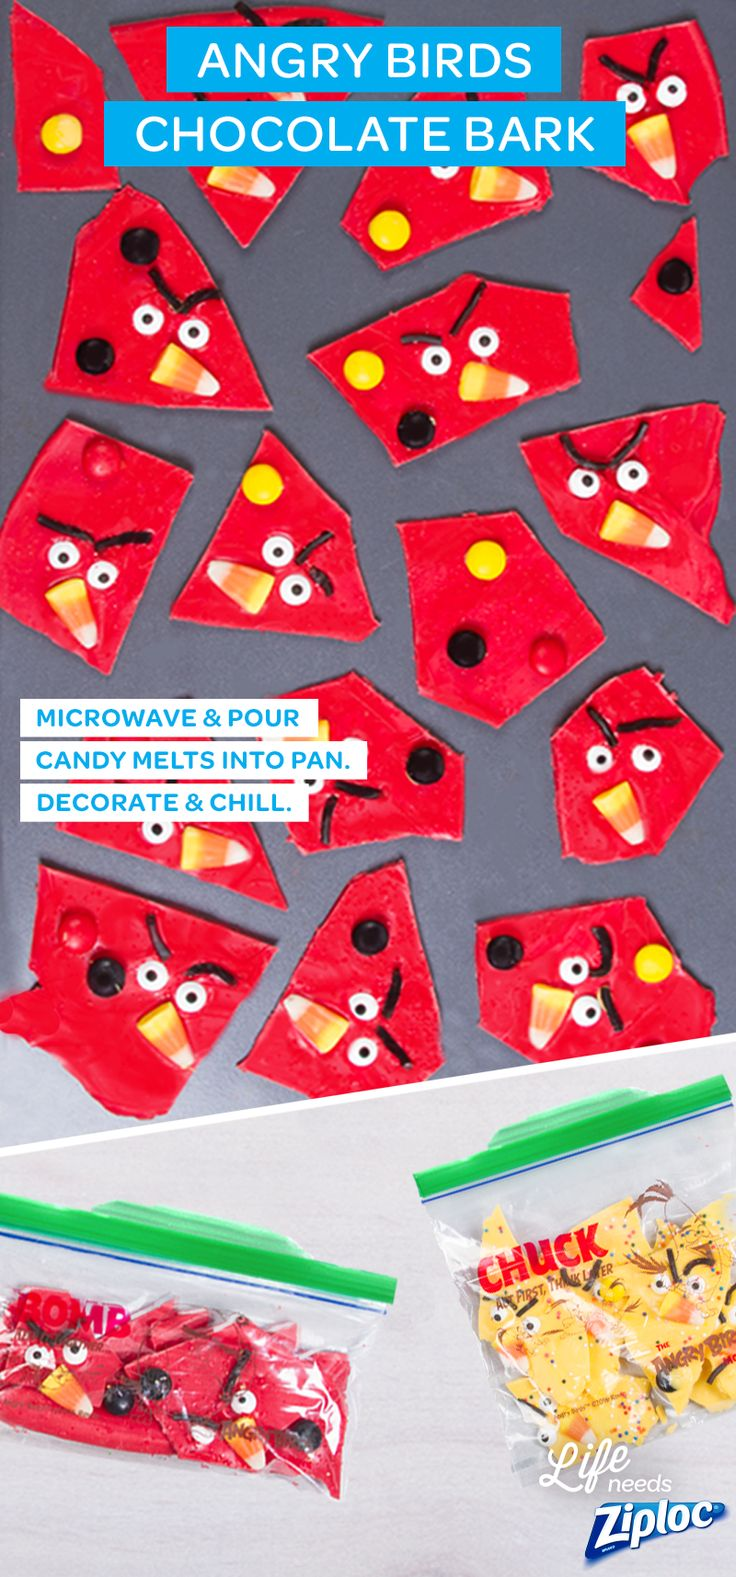 This Homemade Angry Birds chocolate bark recipe is so easy to make and perfect for any kids' party. Just buy red candy melts (look for them at crafting stores), candy corn, candy eyes, and black licorice. Heat the candy melts in the microwave then pour them onto a baking sheet and decorate. The mix sets in less than 30 minutes in the fridge. Pack the pieces in Ziploc® Angry Birds bags for an easy to-go snack. The Angry Birds Movie is in theaters now! ©2016 Rovio